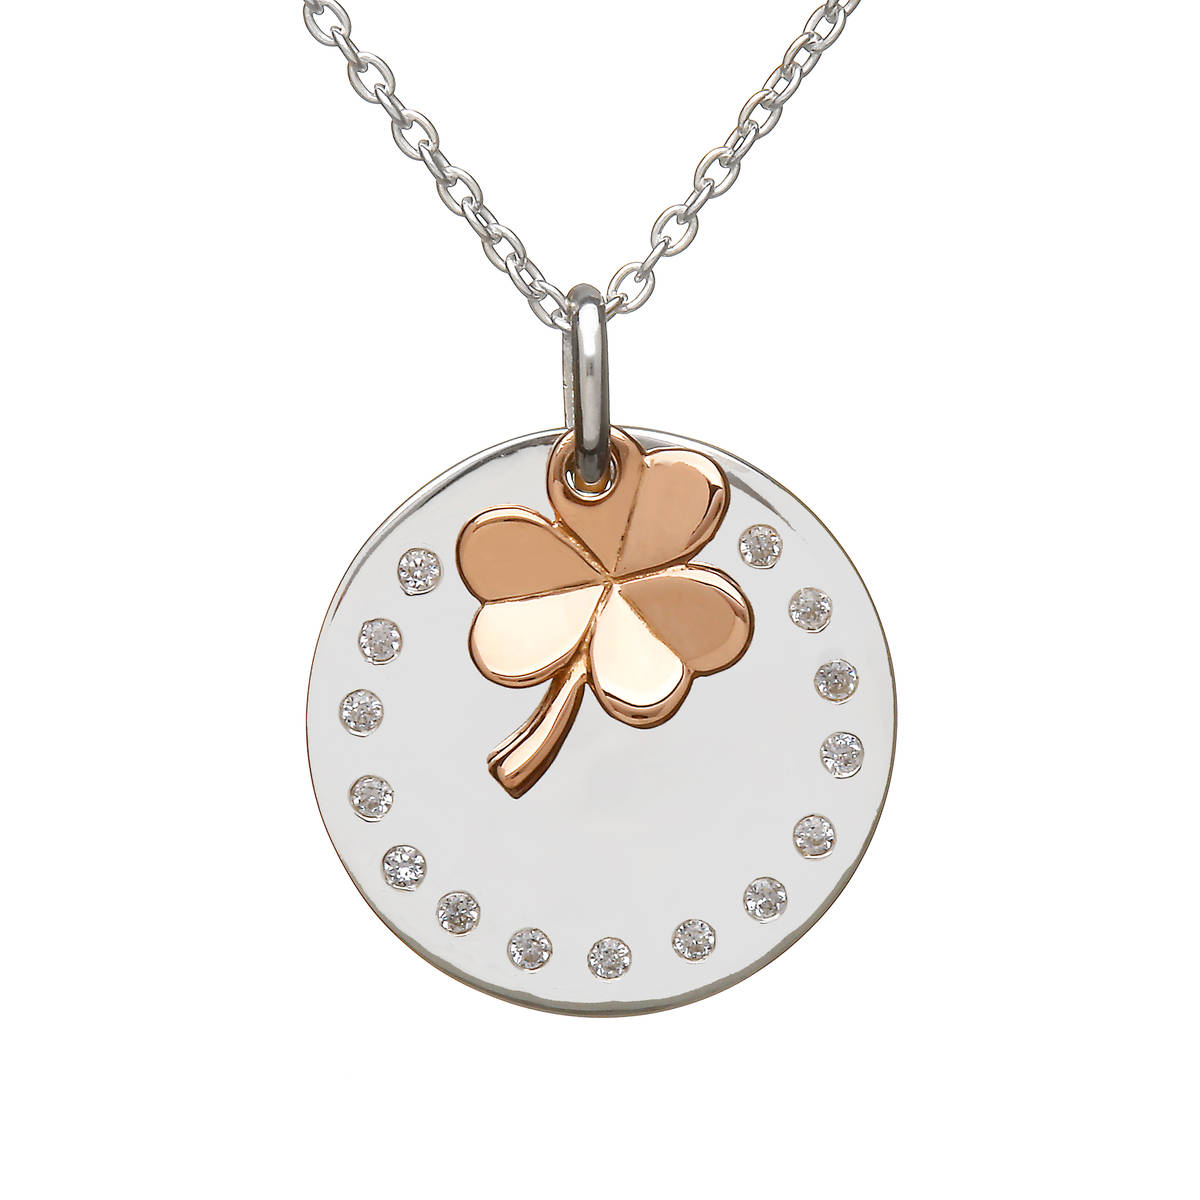 House of Lor silver round cz disc with hanging rose gold Shamrock made from rare Irish gold